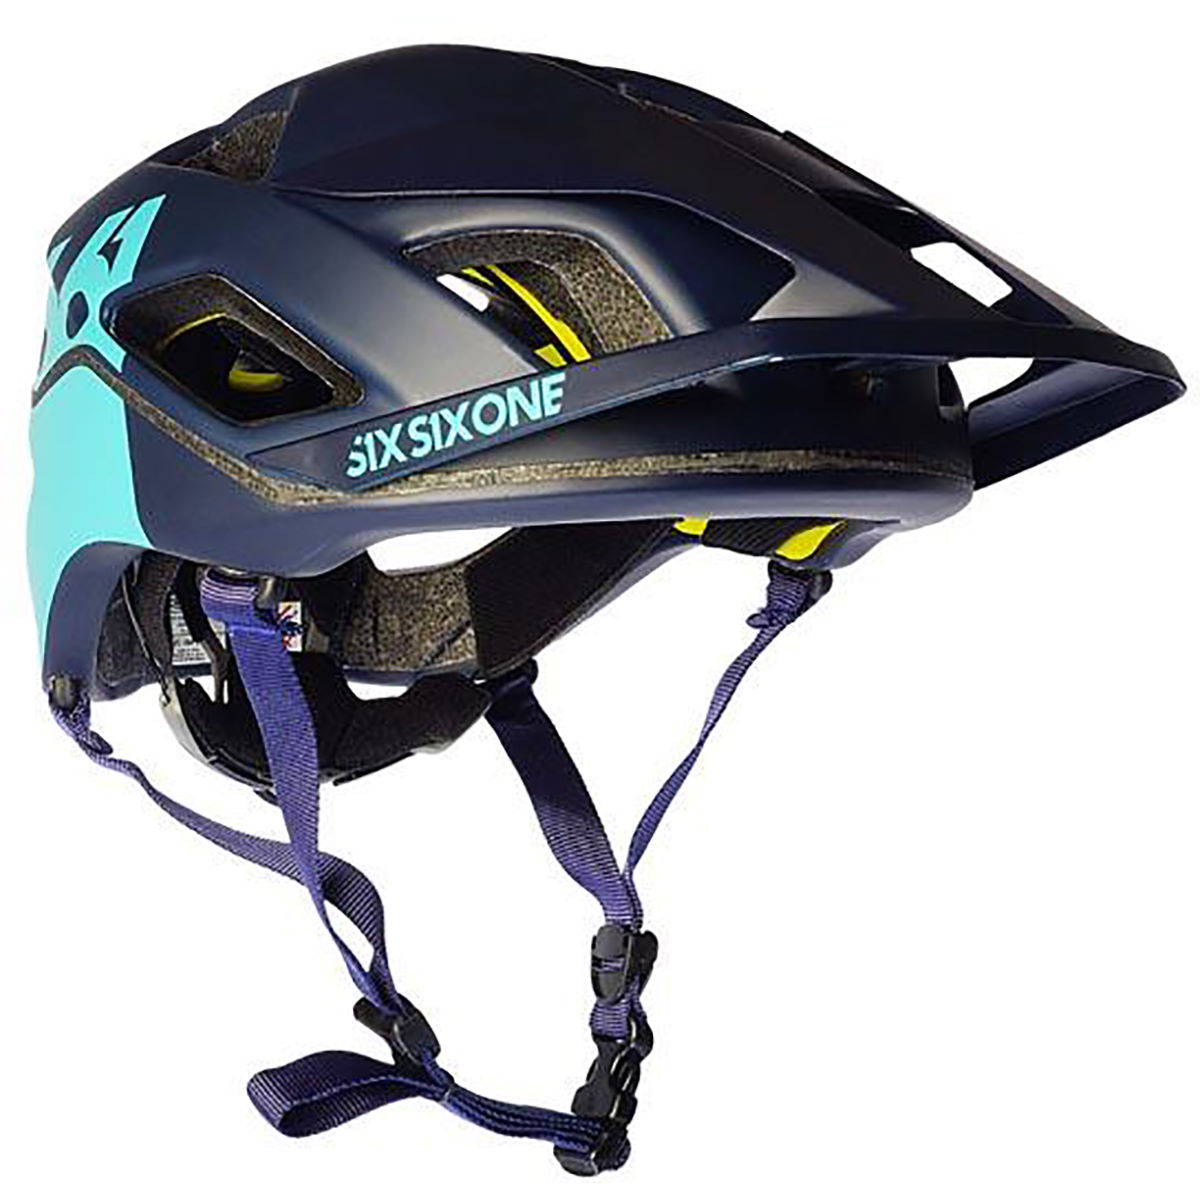 Casque SixSixOne Evo AM Patrol - XS/S Navy/Navy Casques